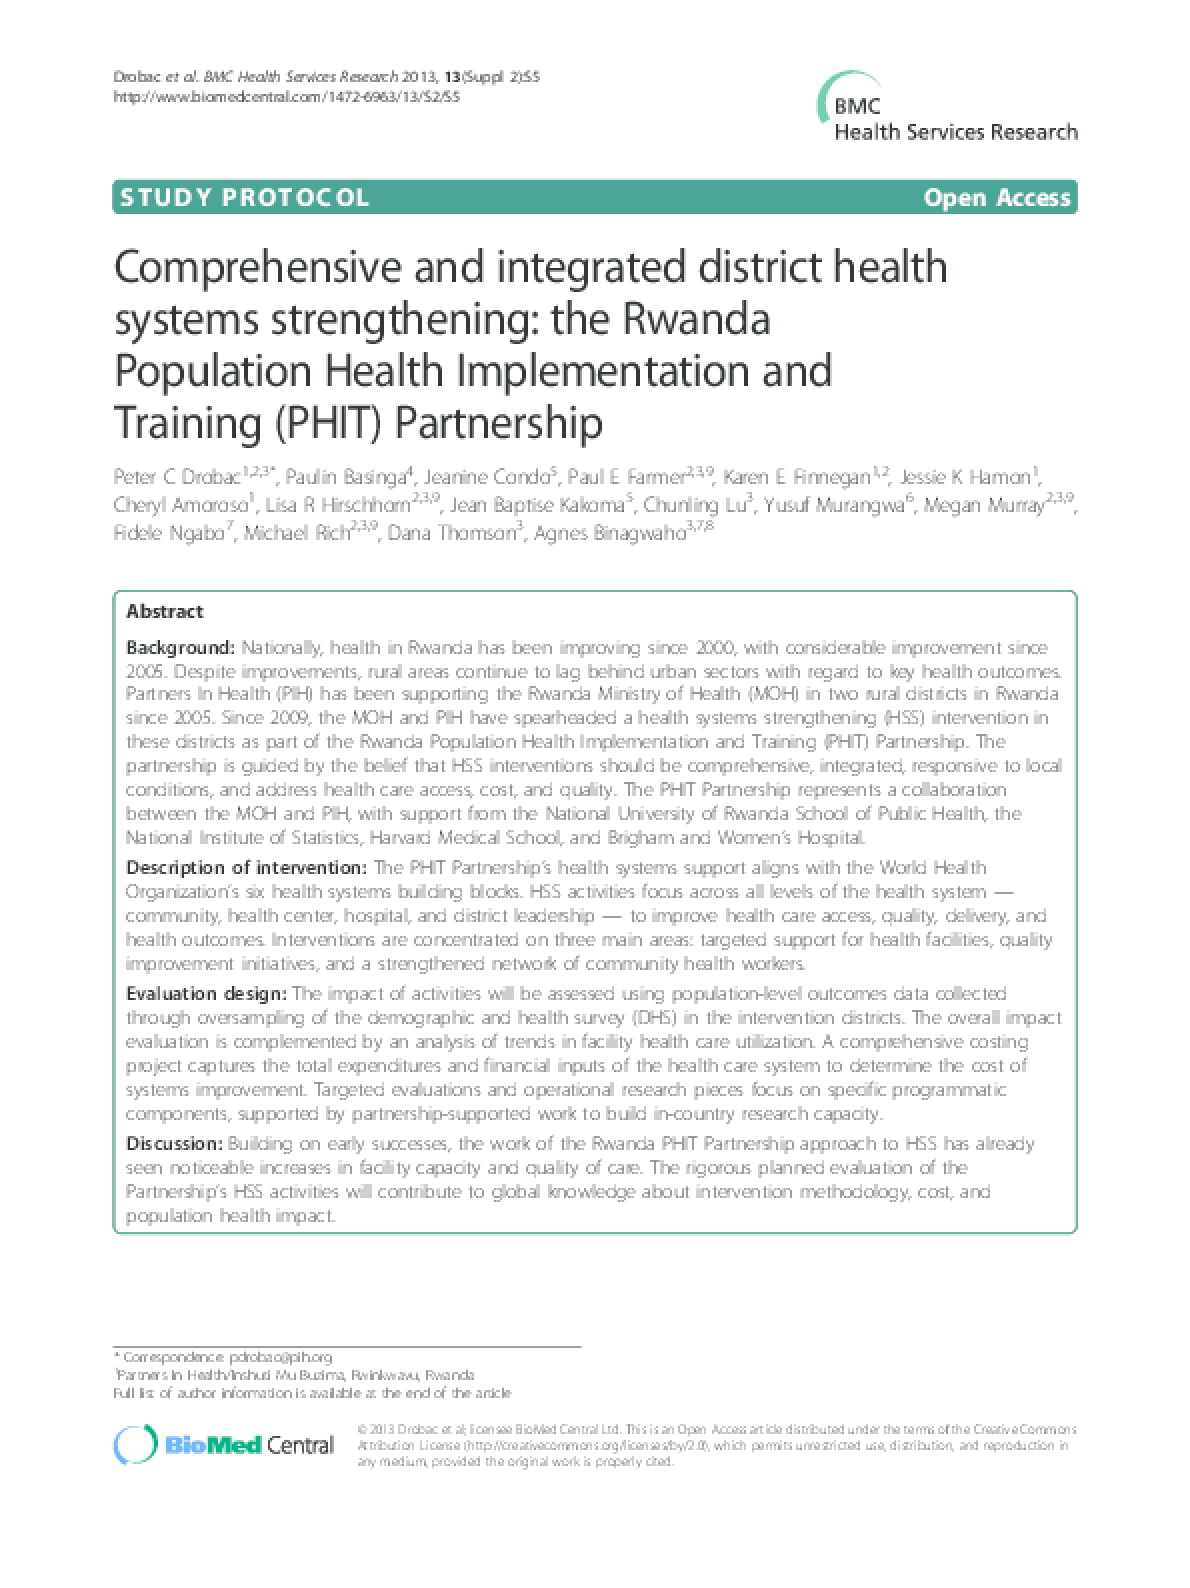 Comprehensive and Integrated District Health Systems Strengthening: the Rwanda Population Health Implementation and Training (PHIT) Partnership